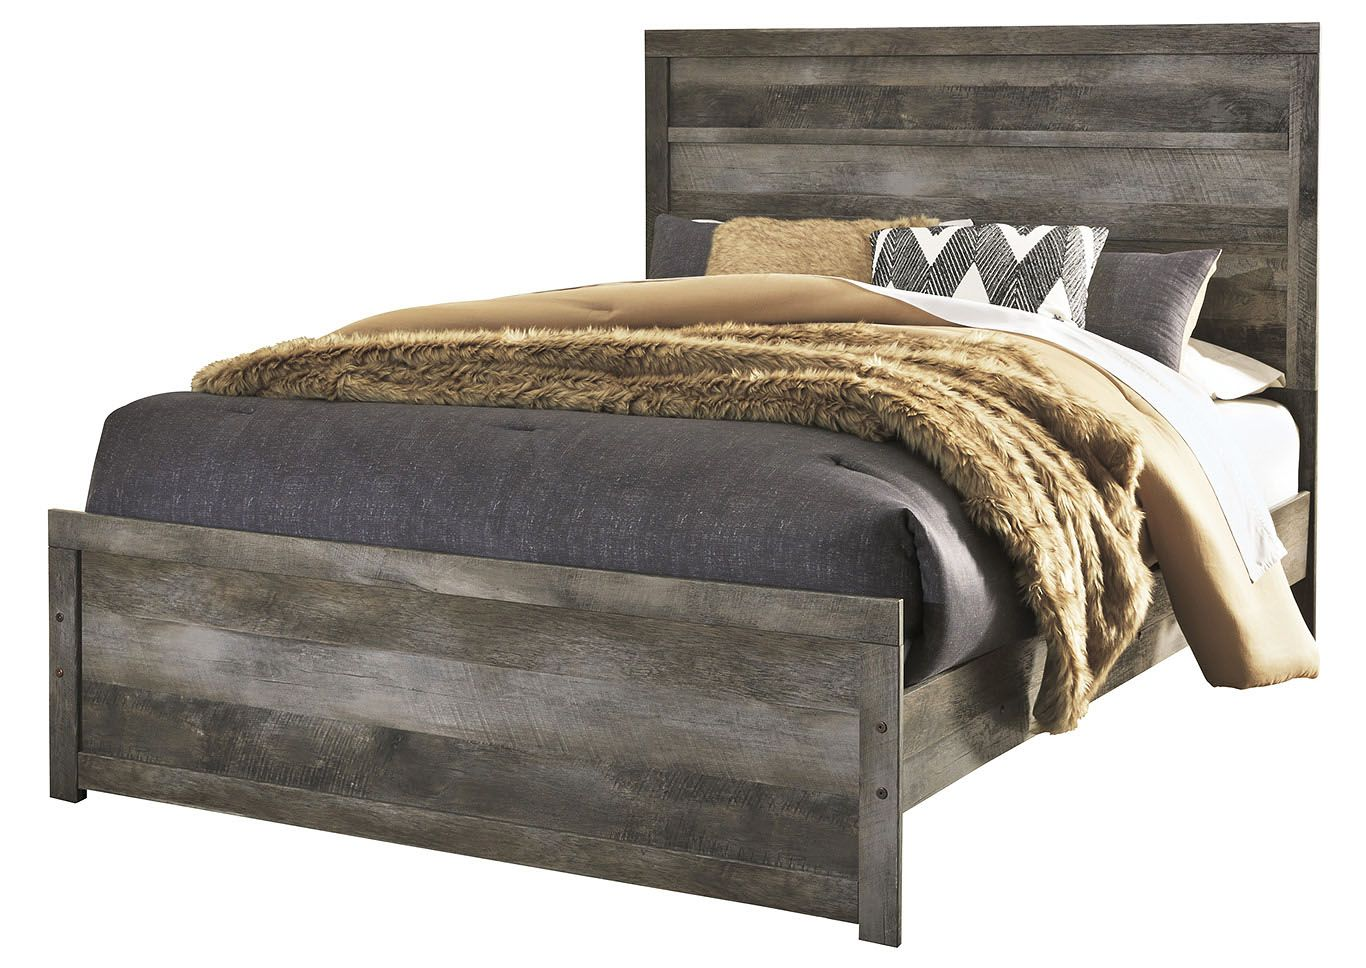 Shop for Wynnlow Gray Rustic Queen Panel Bed starting at